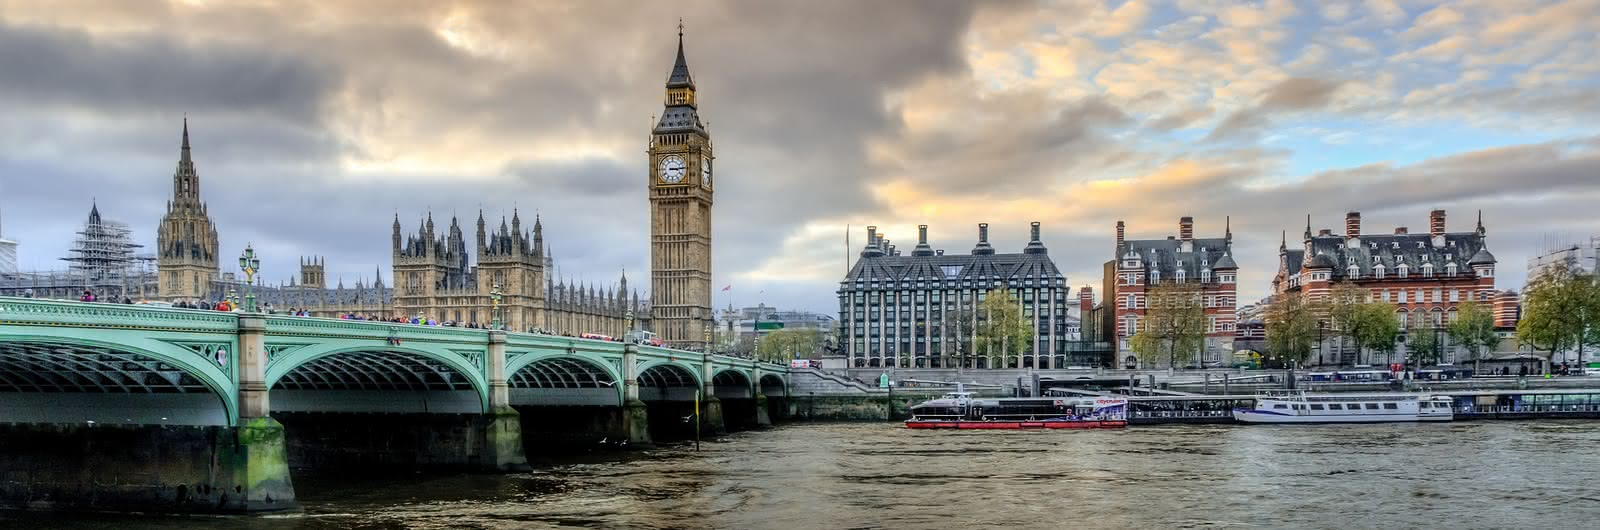 london city header